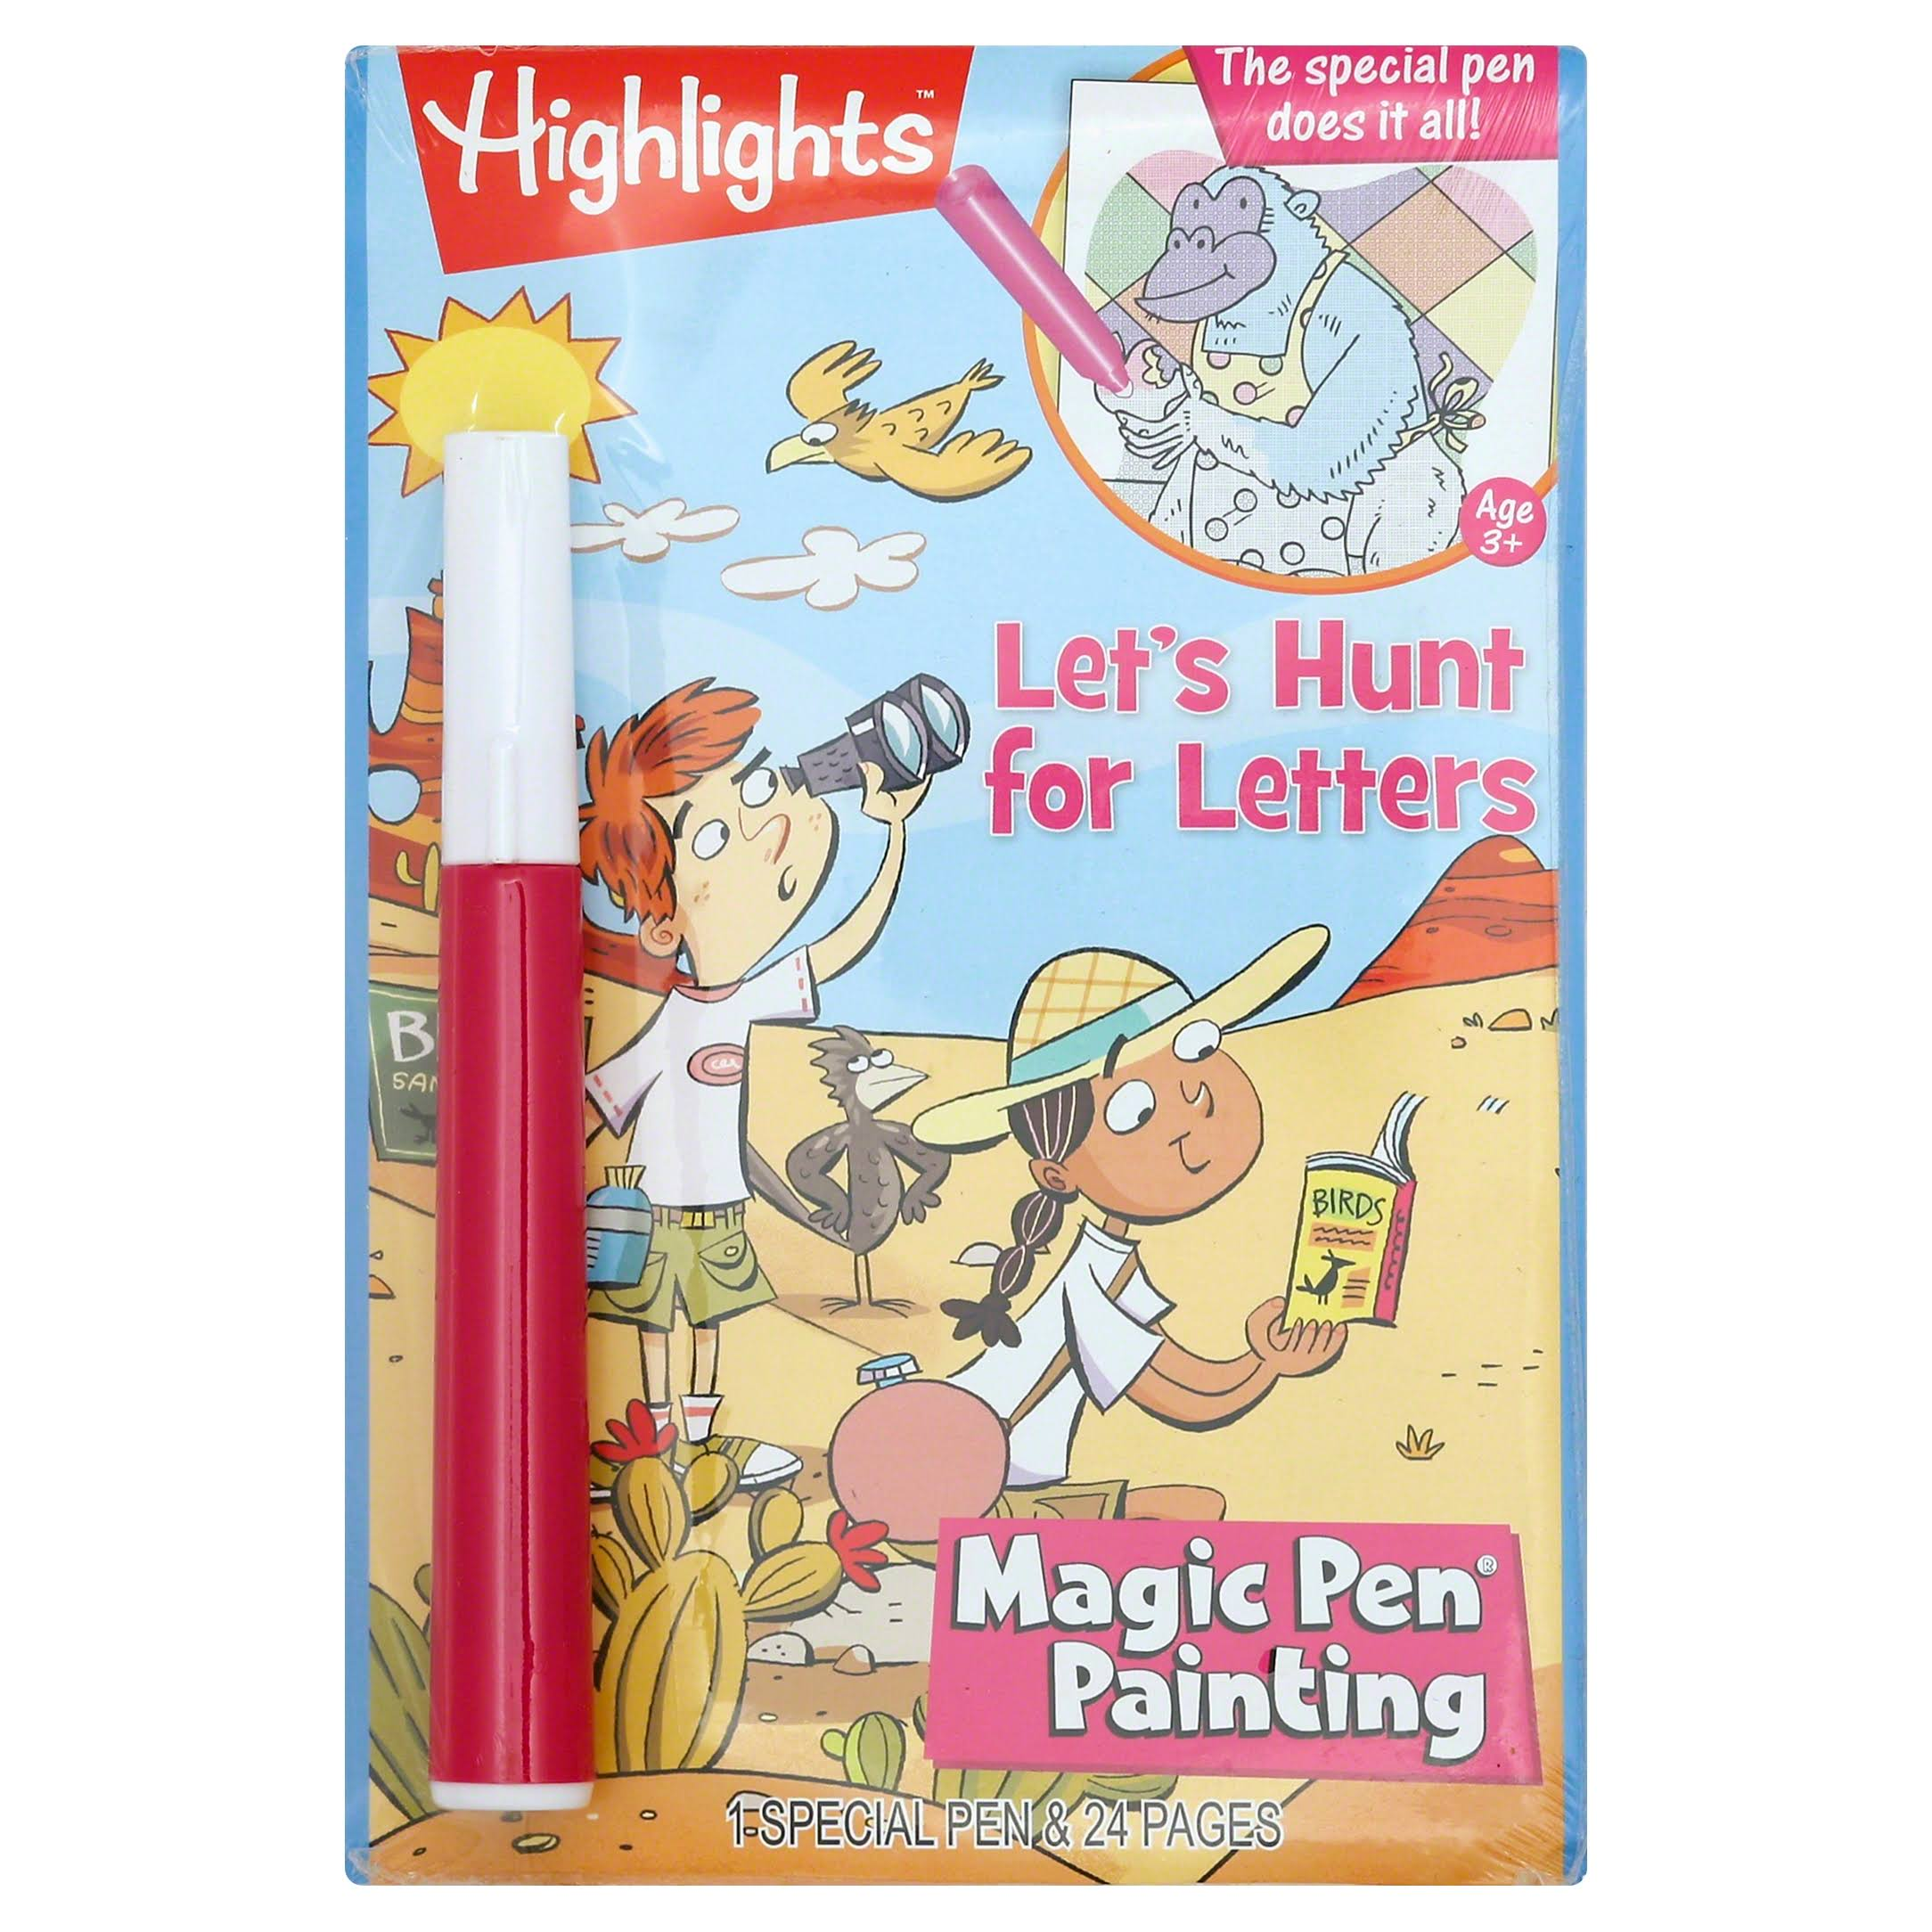 Magic Pen Book, Let's Hunt for Letters